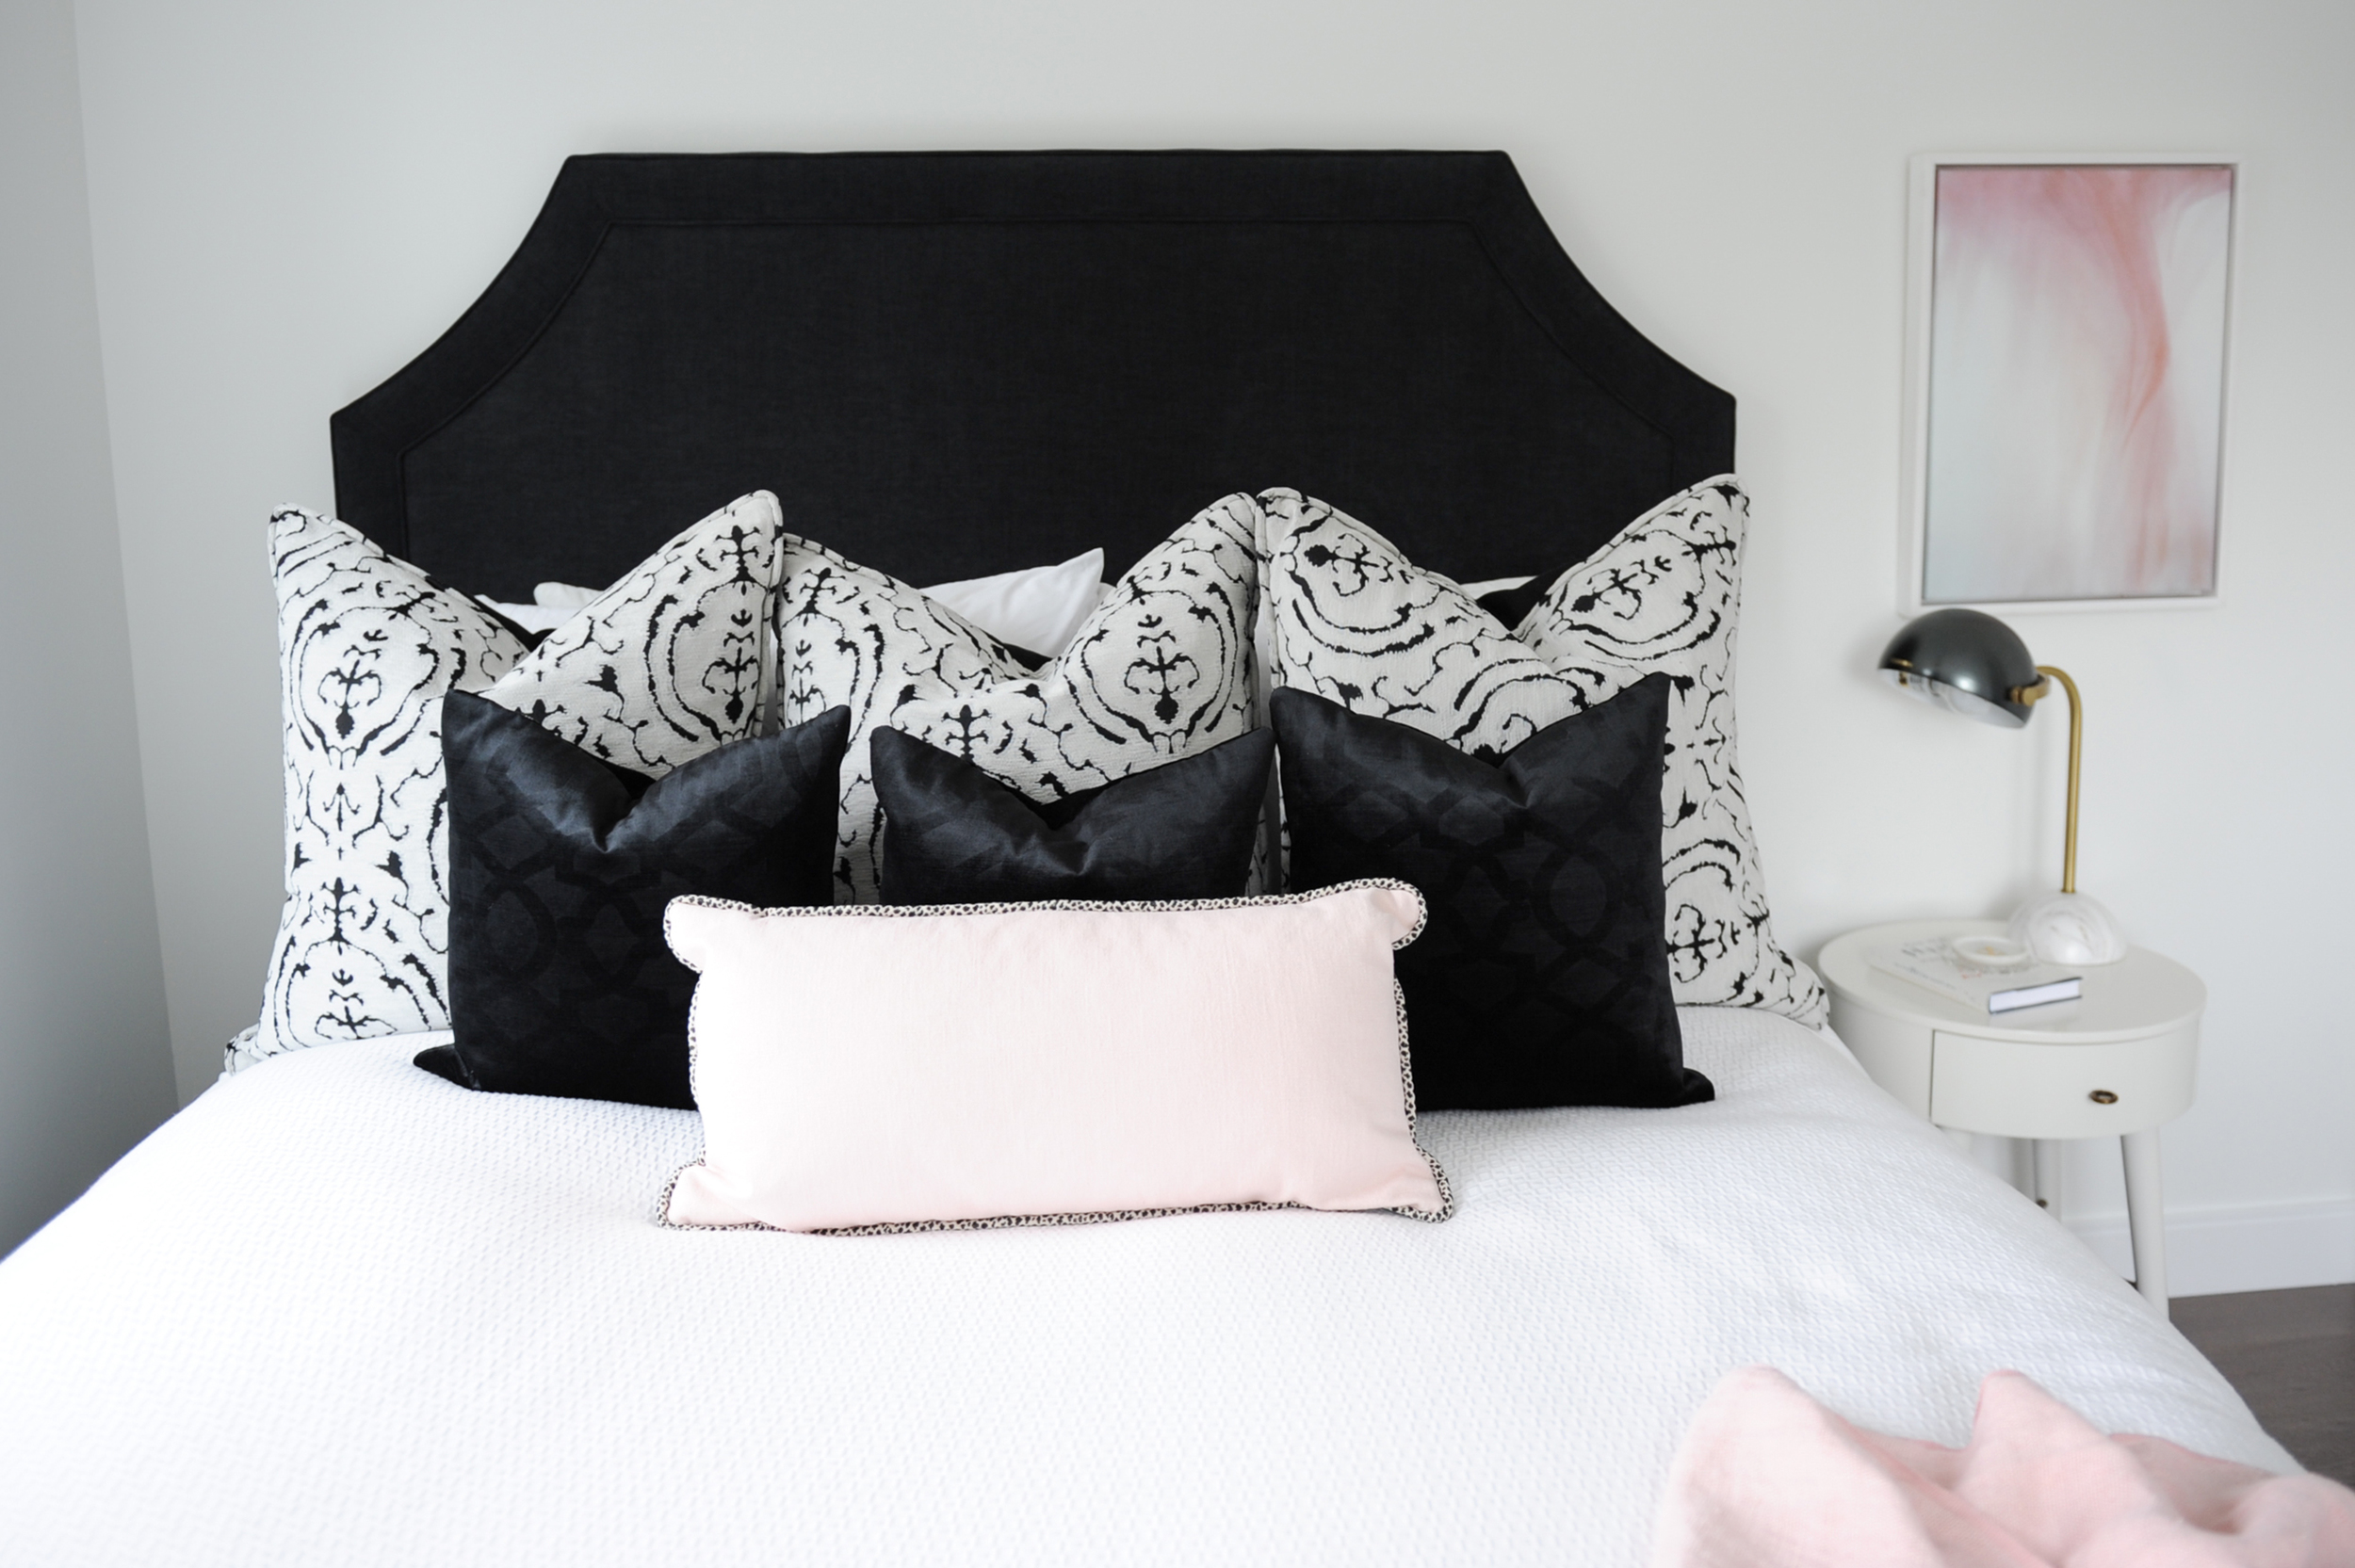 A black headboard to add some drama.